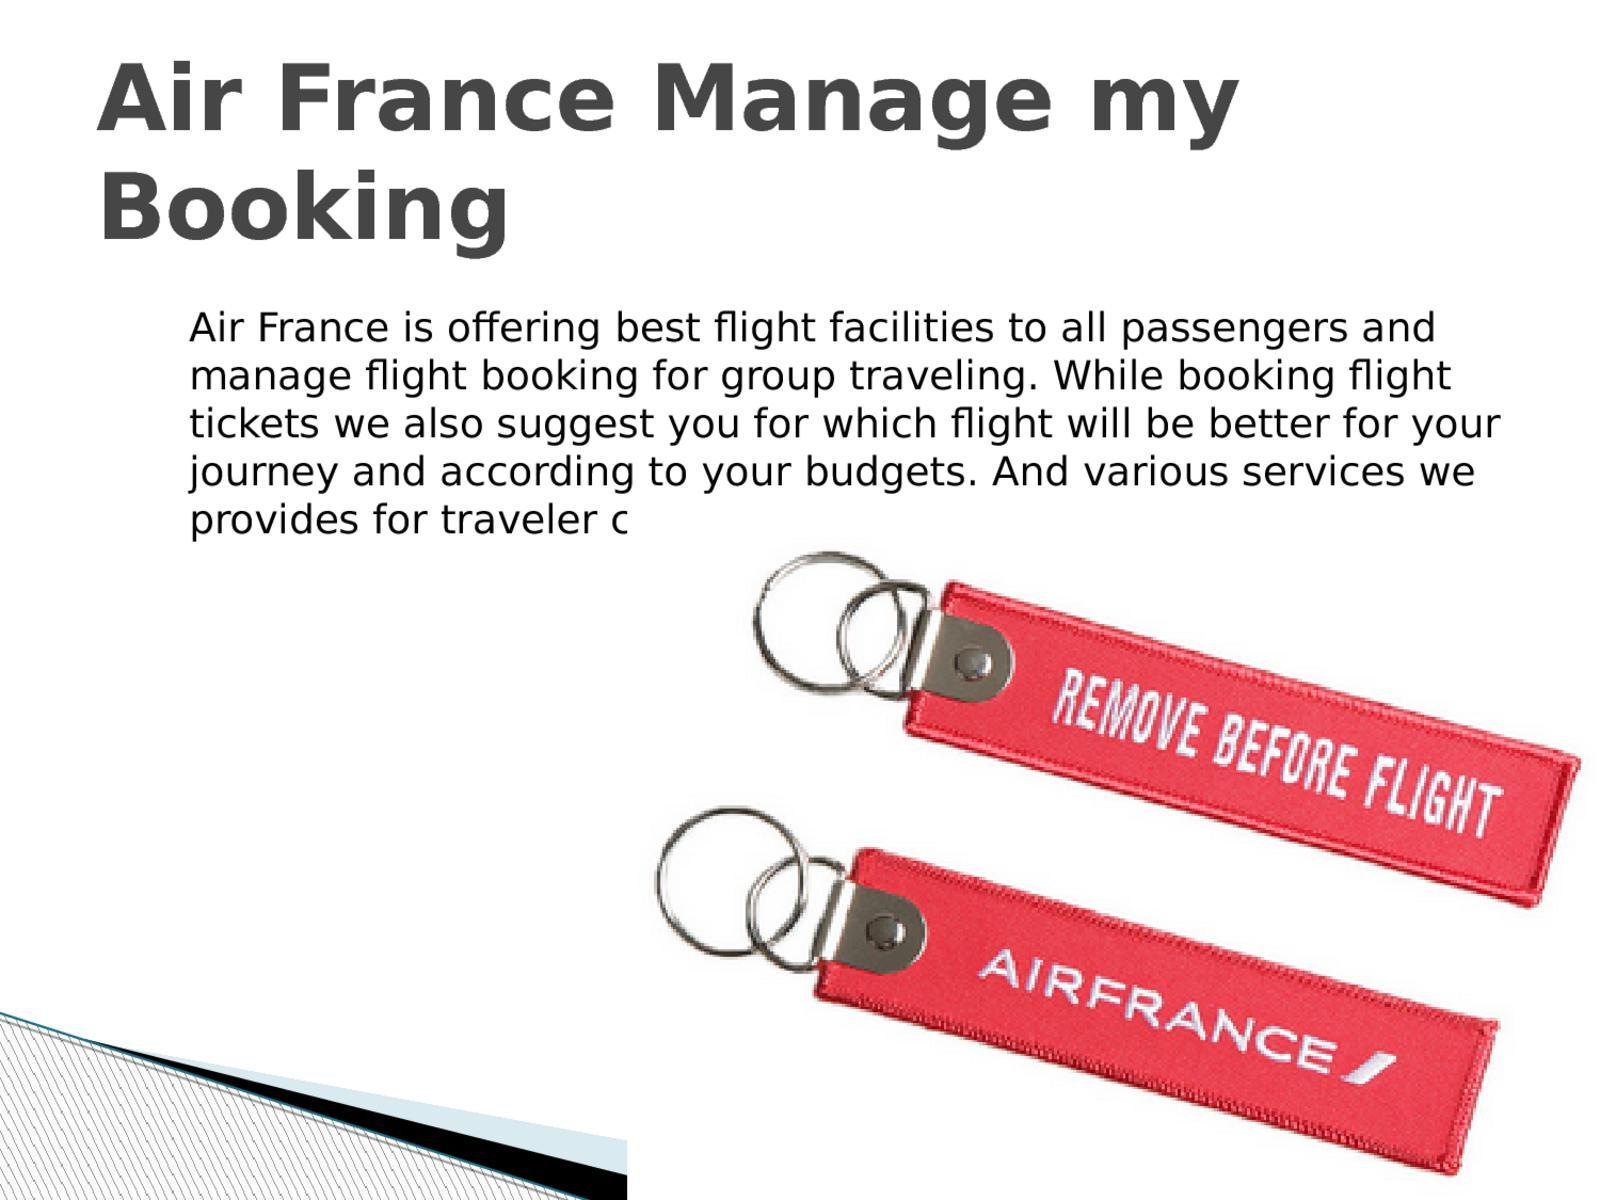 Air france Manage my booking.jpg